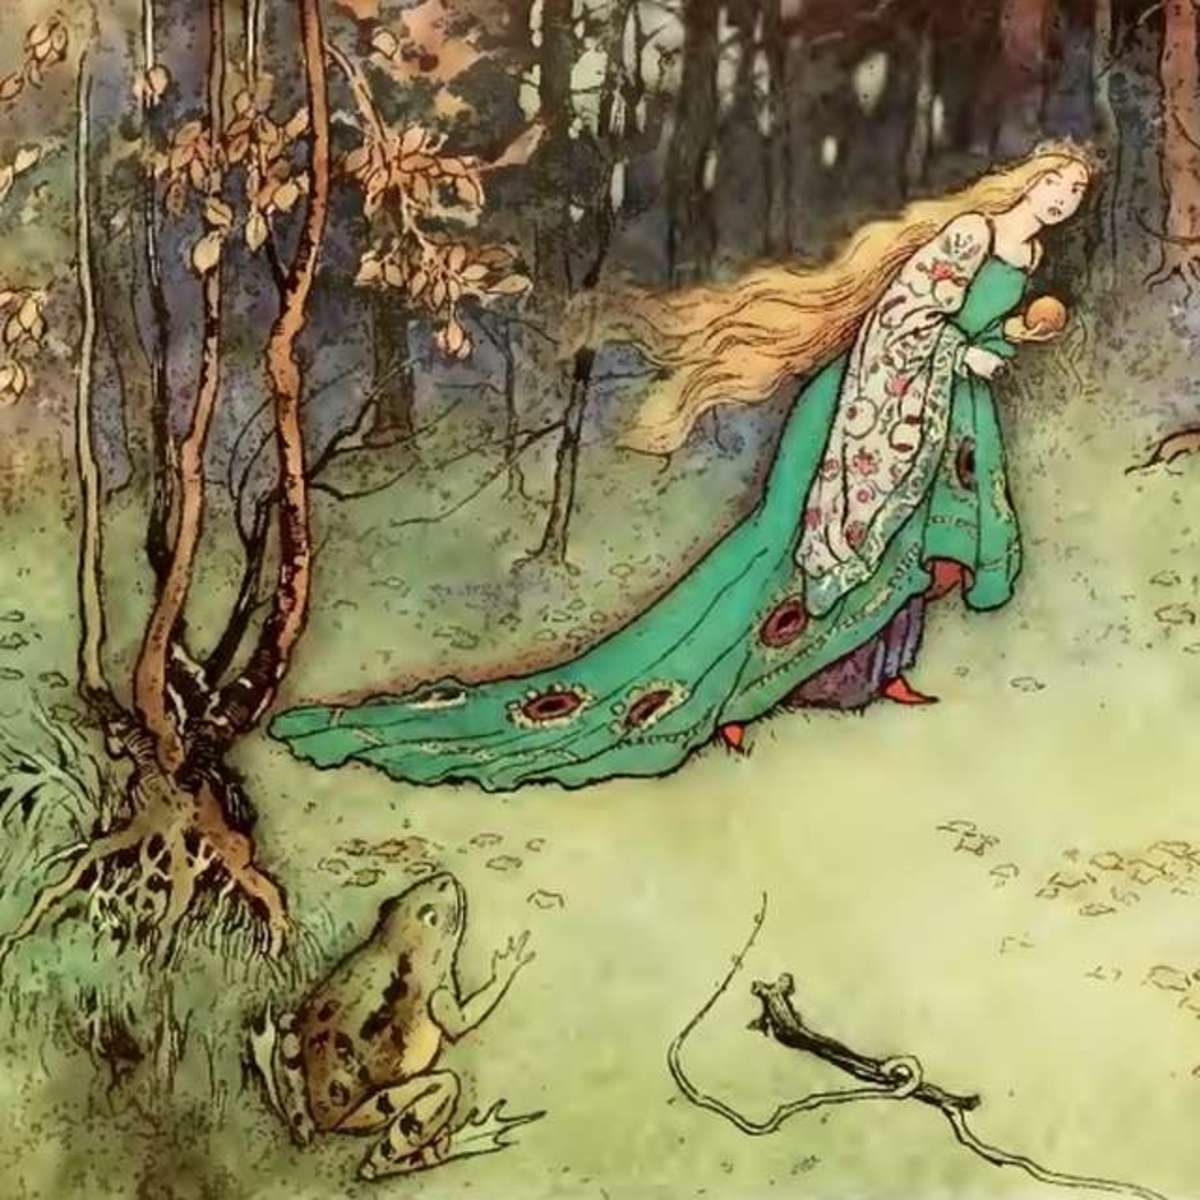 Warwick Goble (Public Domain illustration from Frog Prince)